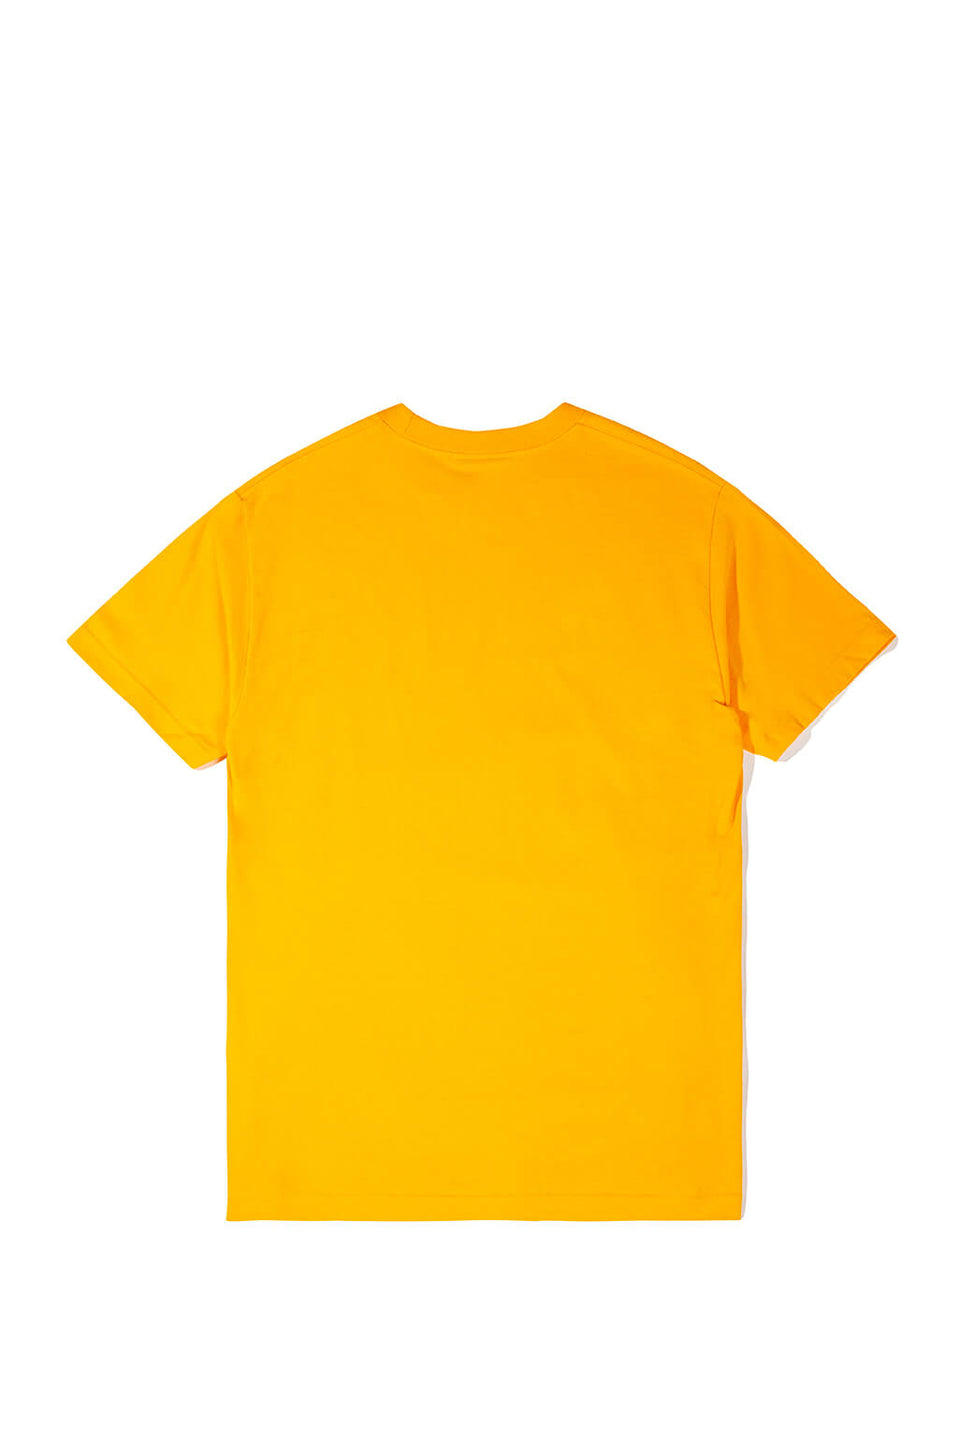 The Hundreds End T-Shirt Gold